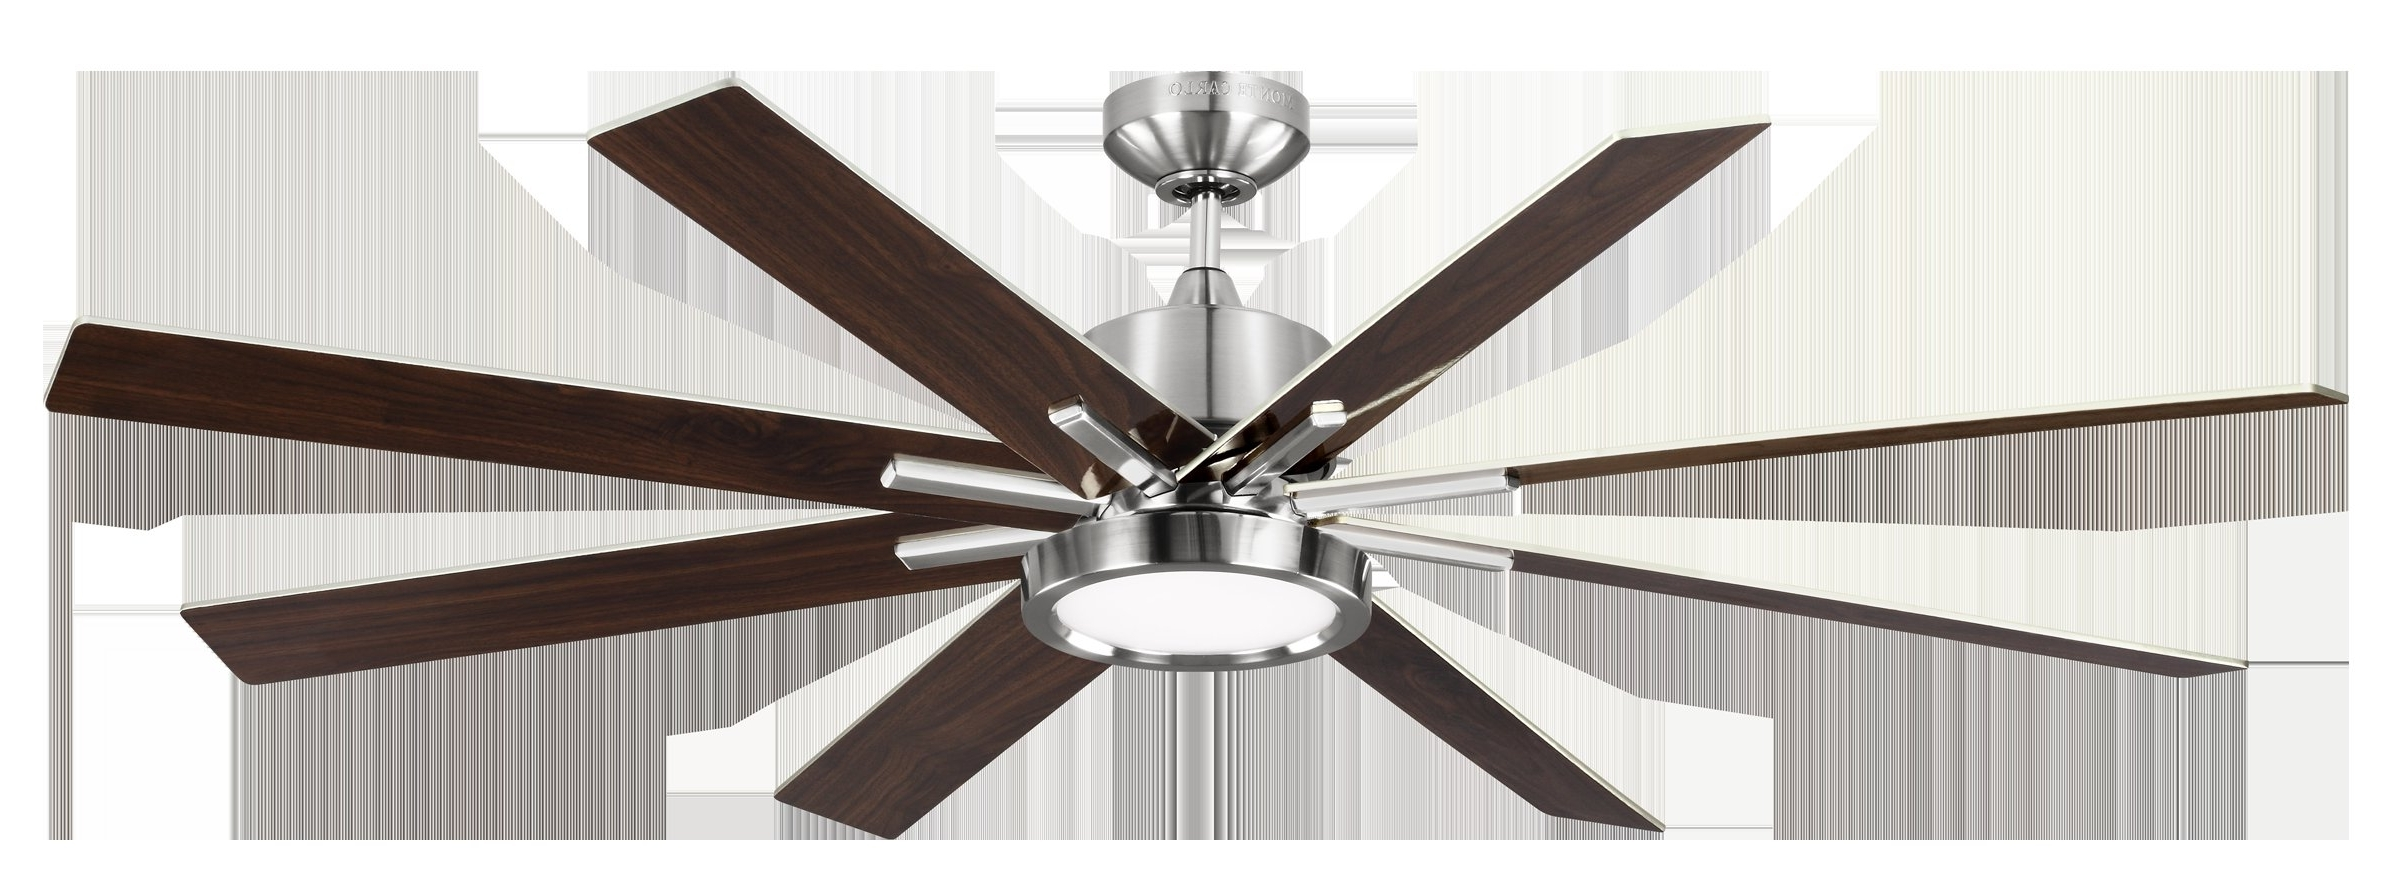 """Favorite Outdoor Ceiling Fans With Remote In Wade Logan 60"""" Woodlynne 8 Blade Outdoor Ceiling Fan With Remote (View 8 of 20)"""